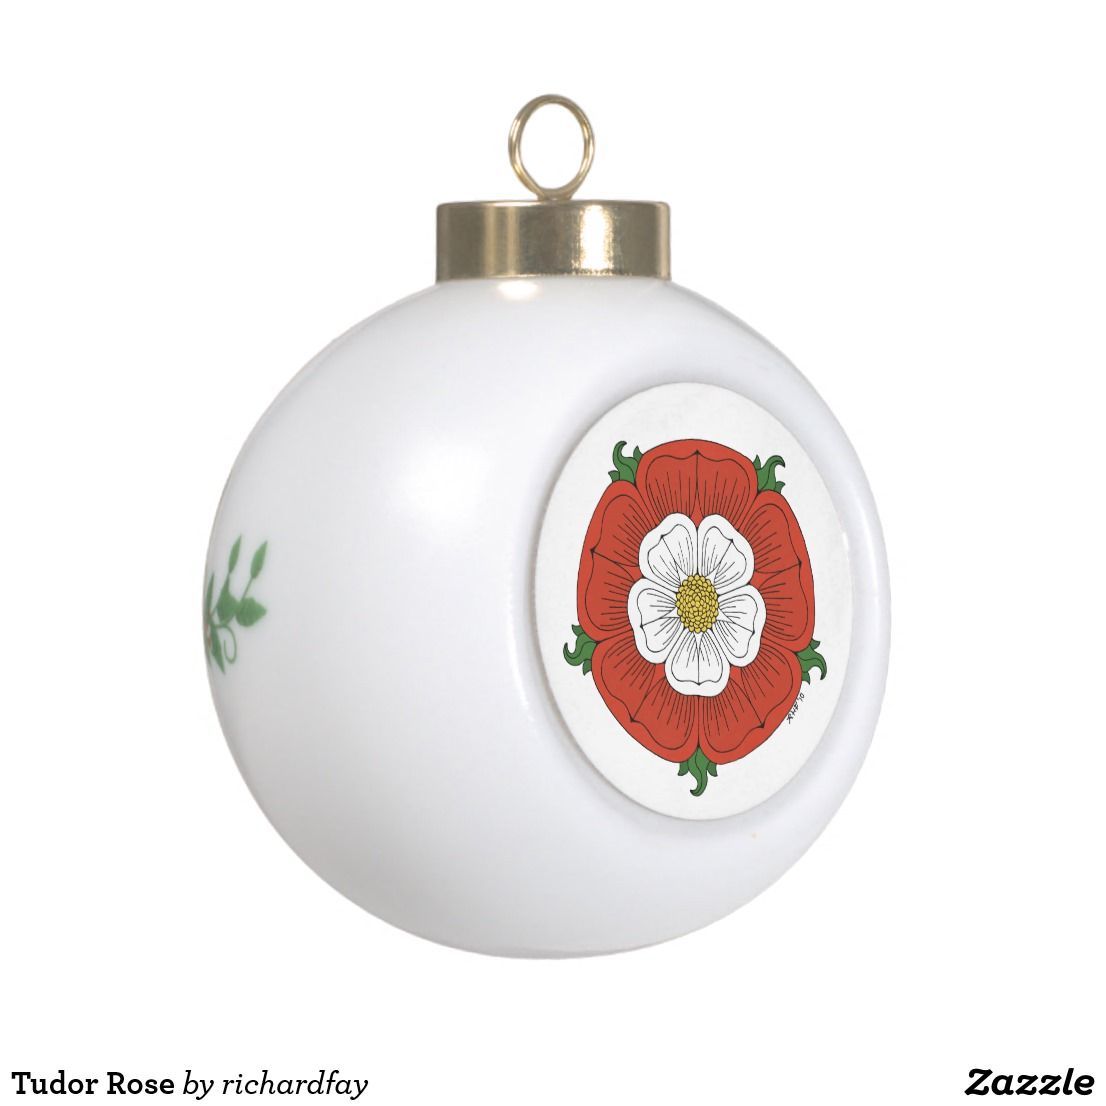 Tudor Rose Ceramic Ball Christmas Ornament in 2018 | Nailed It ...